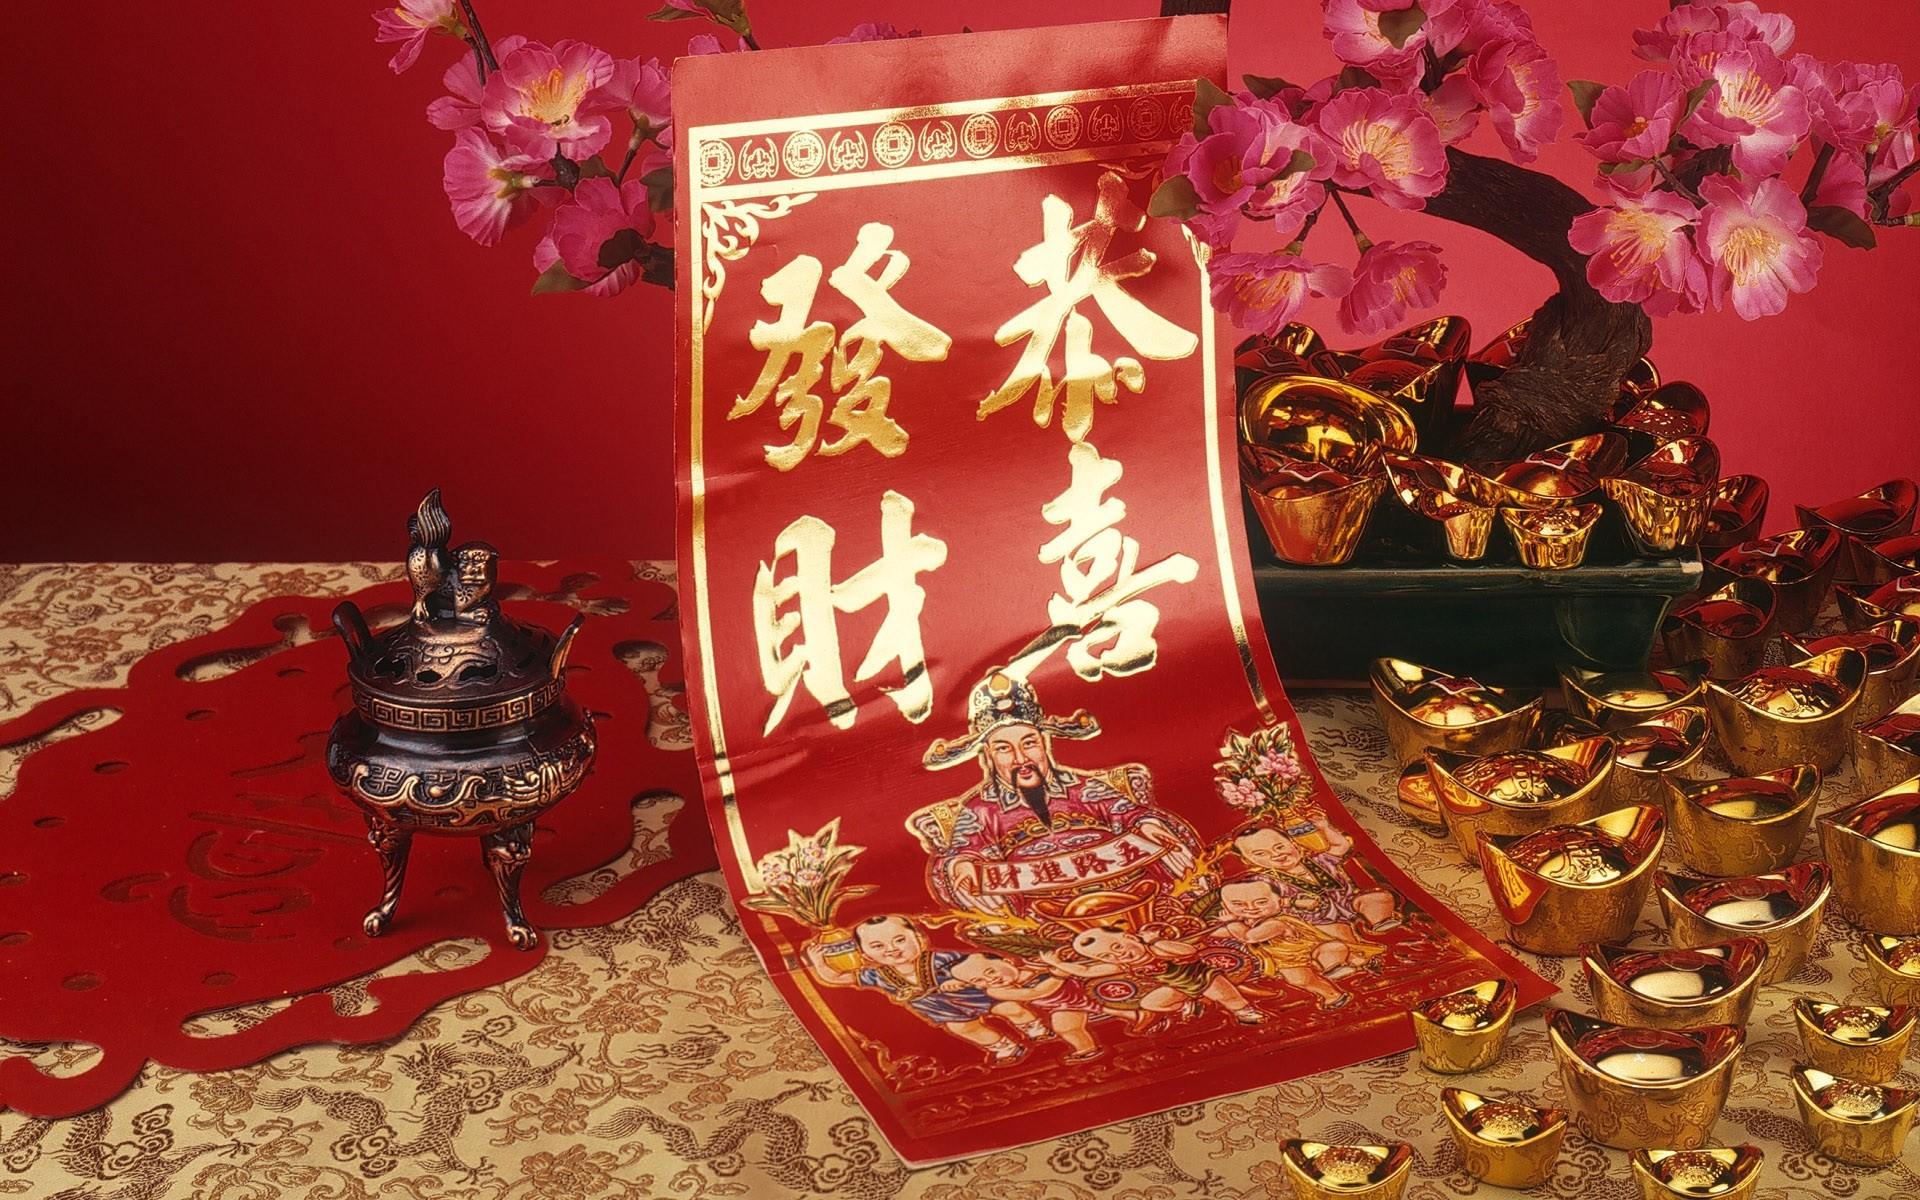 1920x1200 Chinese New Year holiday celebration party festival lunar Cultural  religious Chinese folk religion Buddhist Confucian Daoism asian oriental  1cny china ...